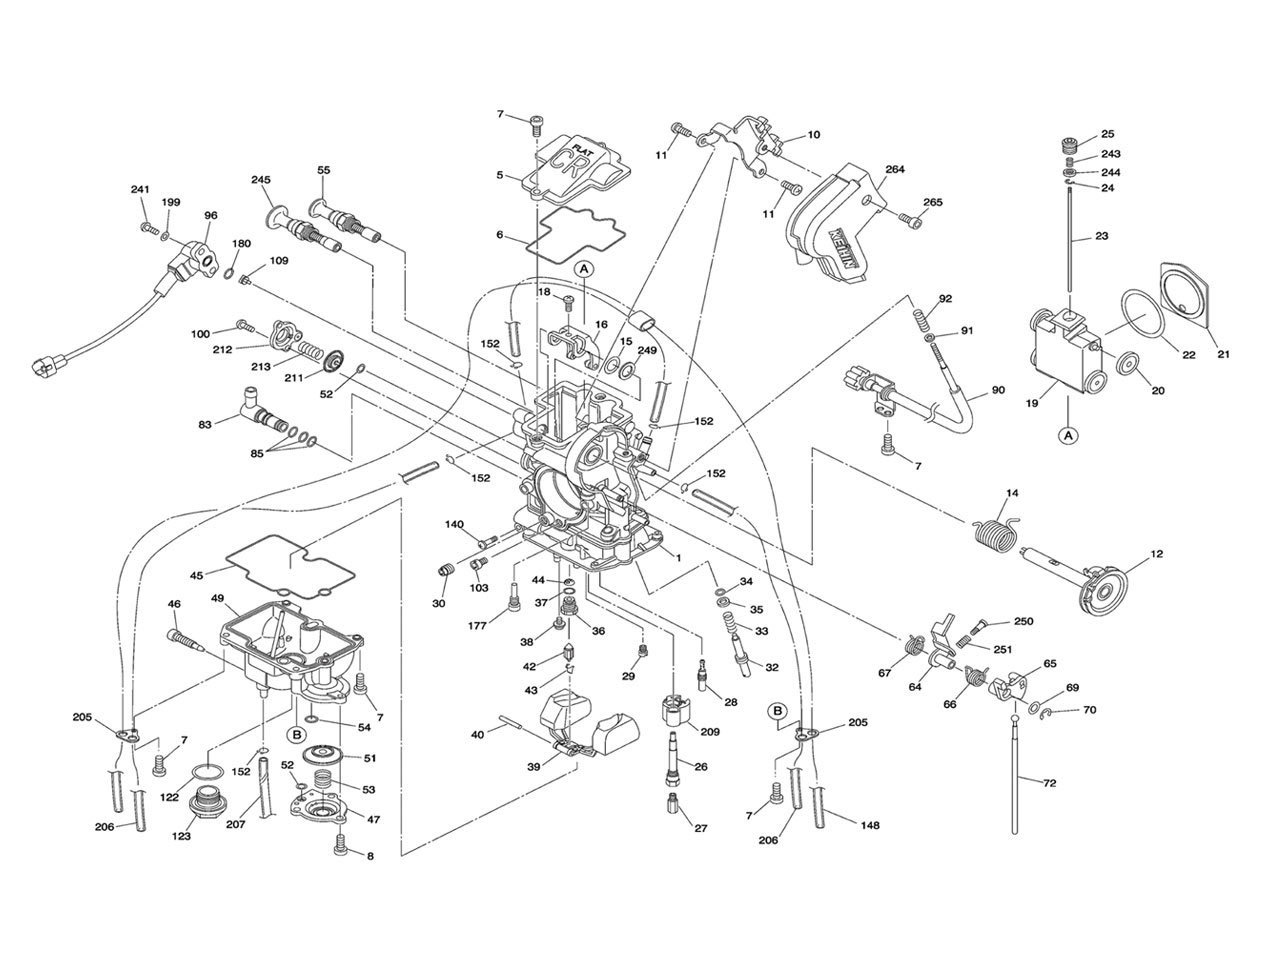 keihin fcr mx carburetor parts diagram rh frankmxparts com keihin bch carburetor diagram keihin cvk carburetor diagram